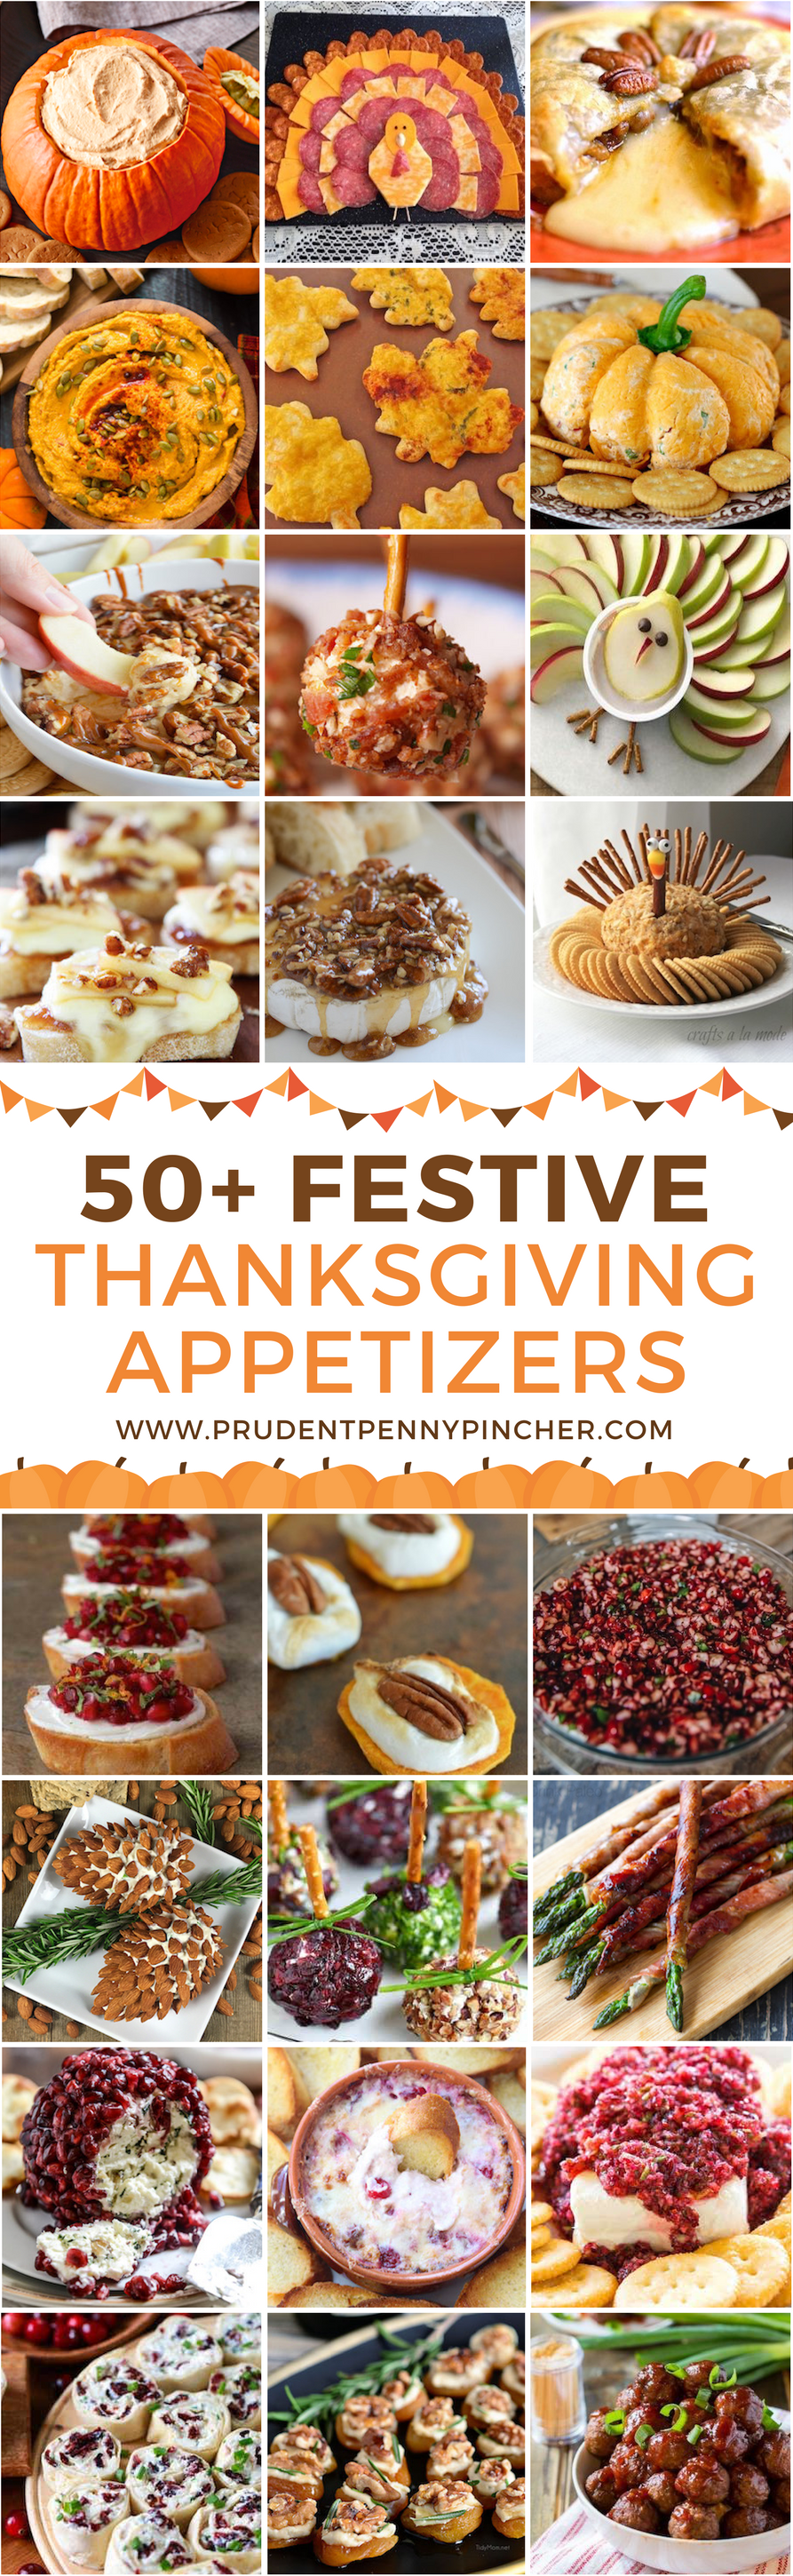 50 Festive Thanksgiving Appetizers #thanksgivingrecipes